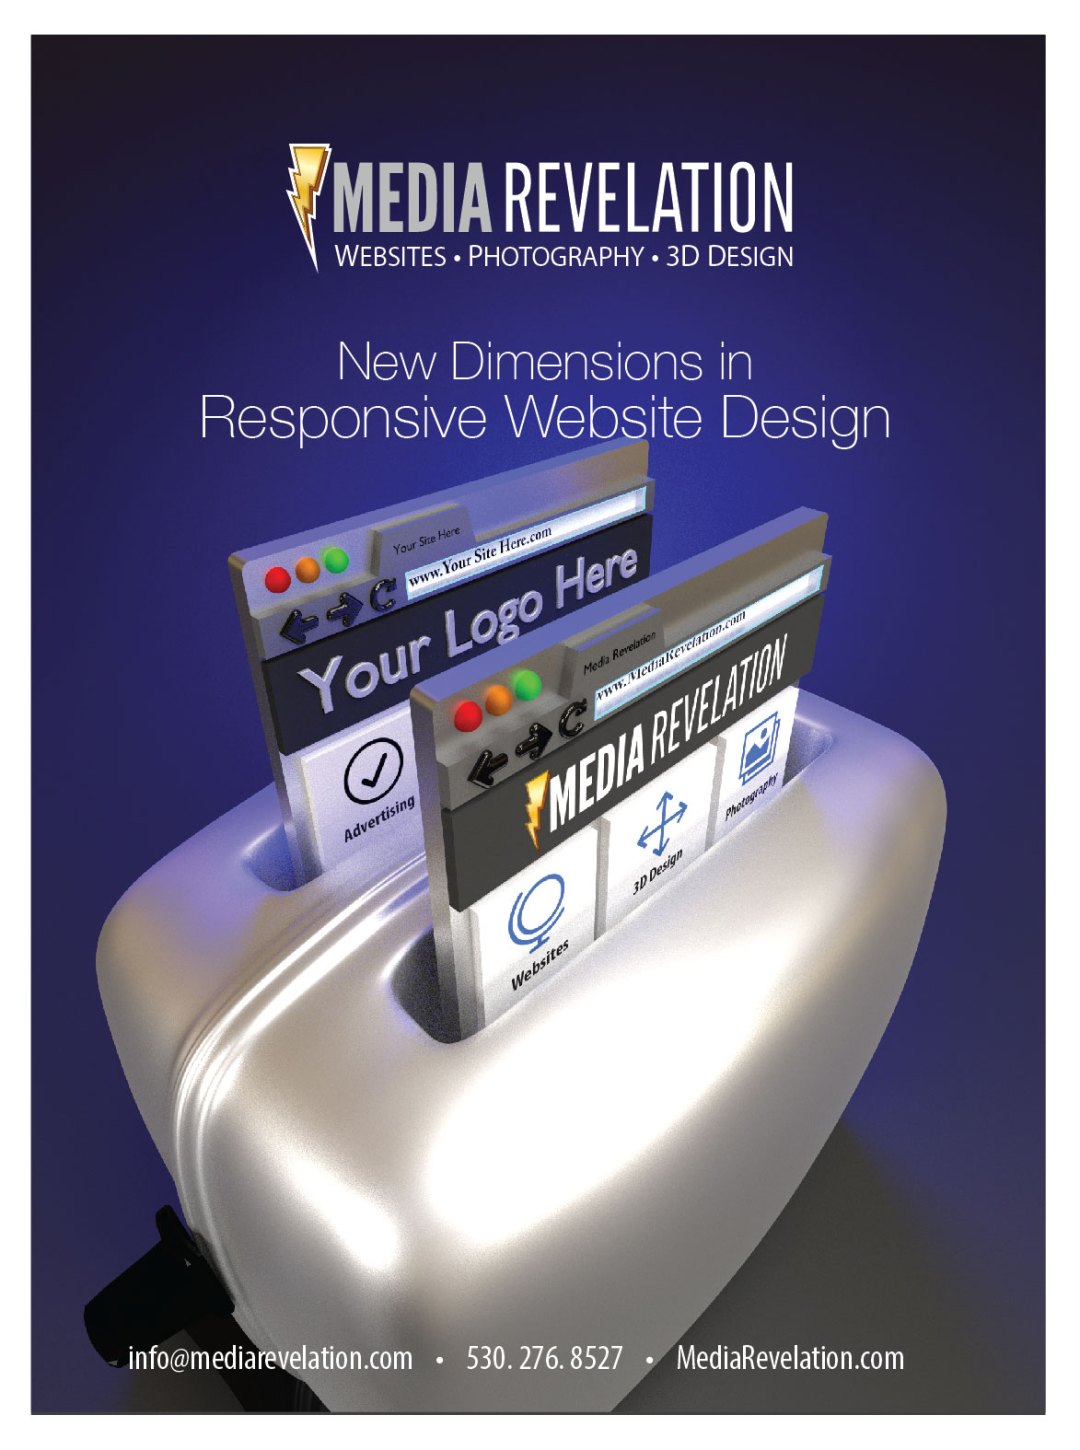 Media Revelation - Print Ad Design - Responsive website design